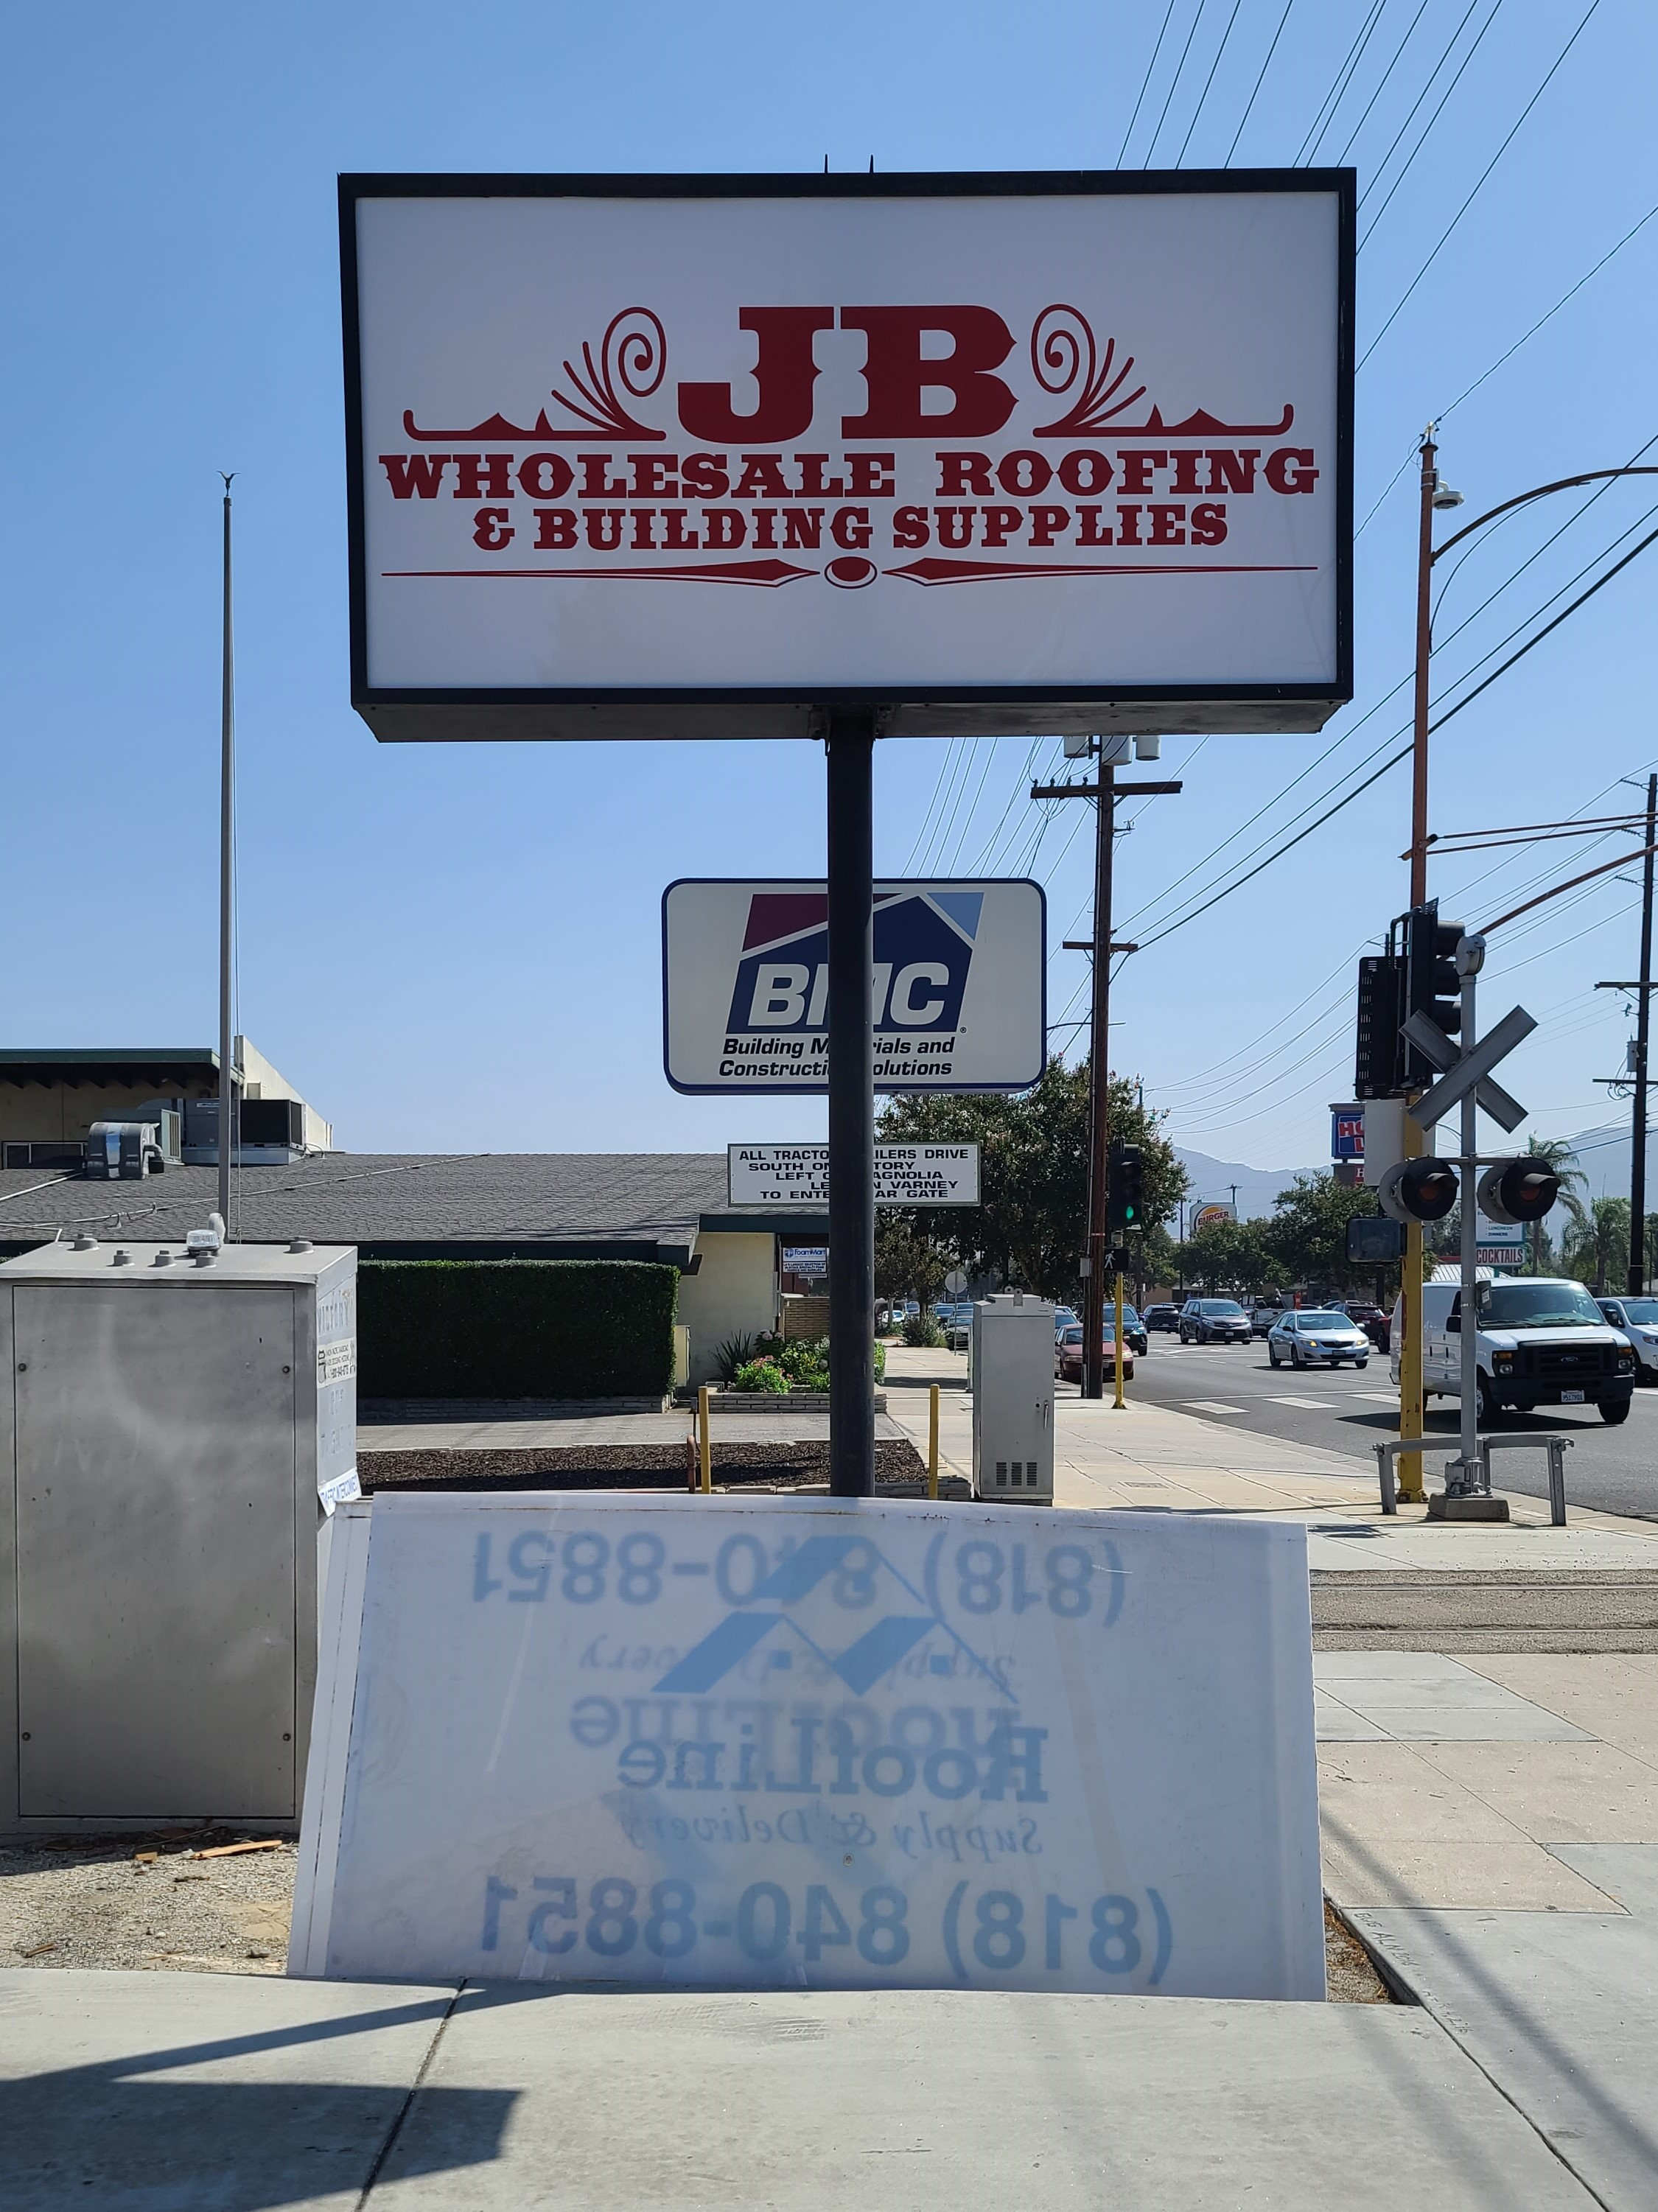 More from our extensive sign package for JB Wholesale Roofing & Building Supplies, this time it's lexan print light box sign inserts for their Burbank branch.